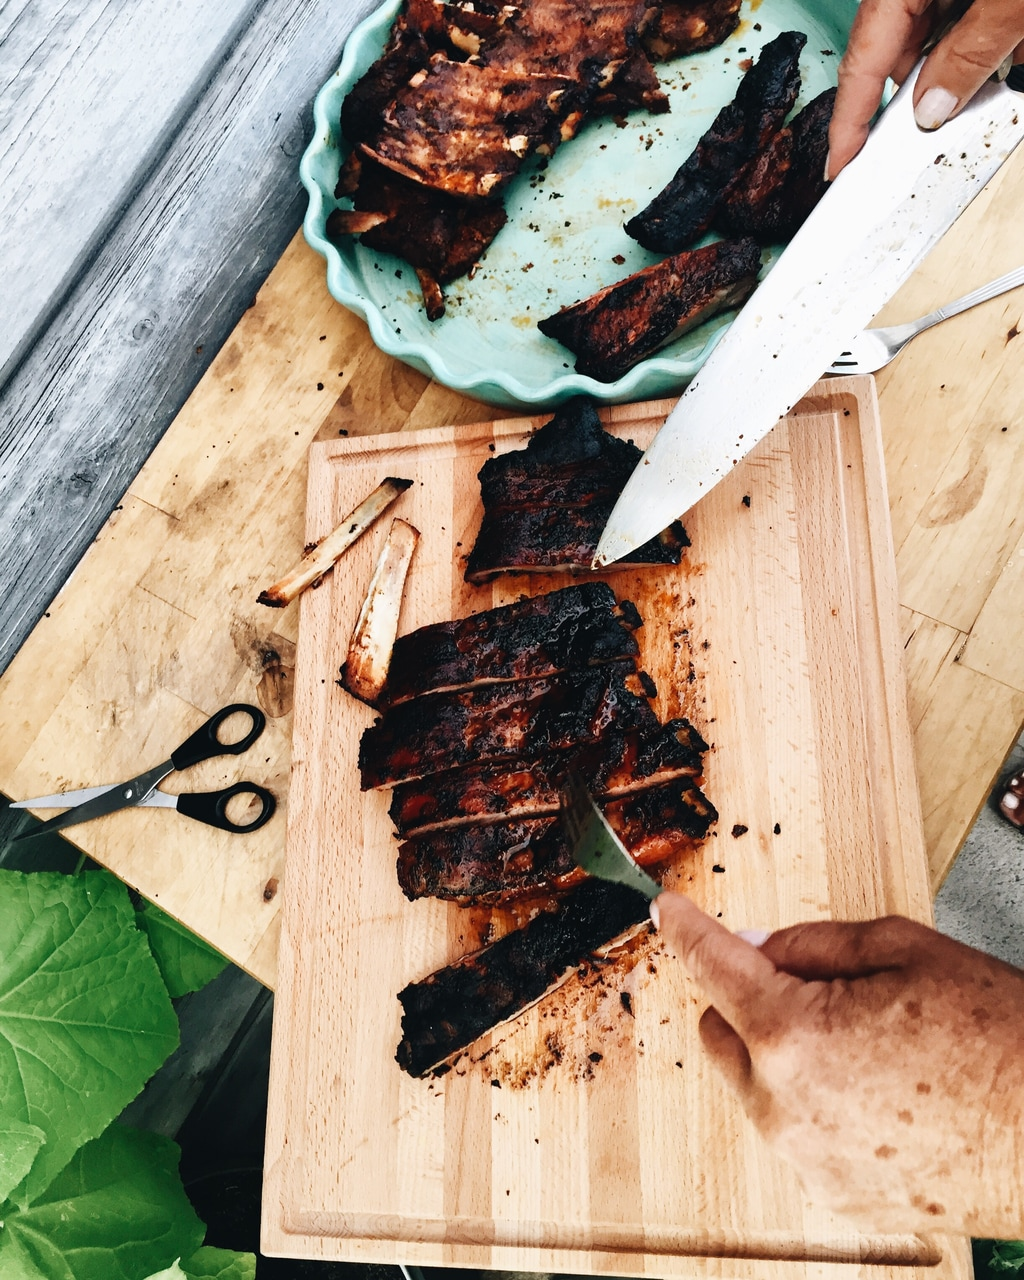 bbq, food, and grill image